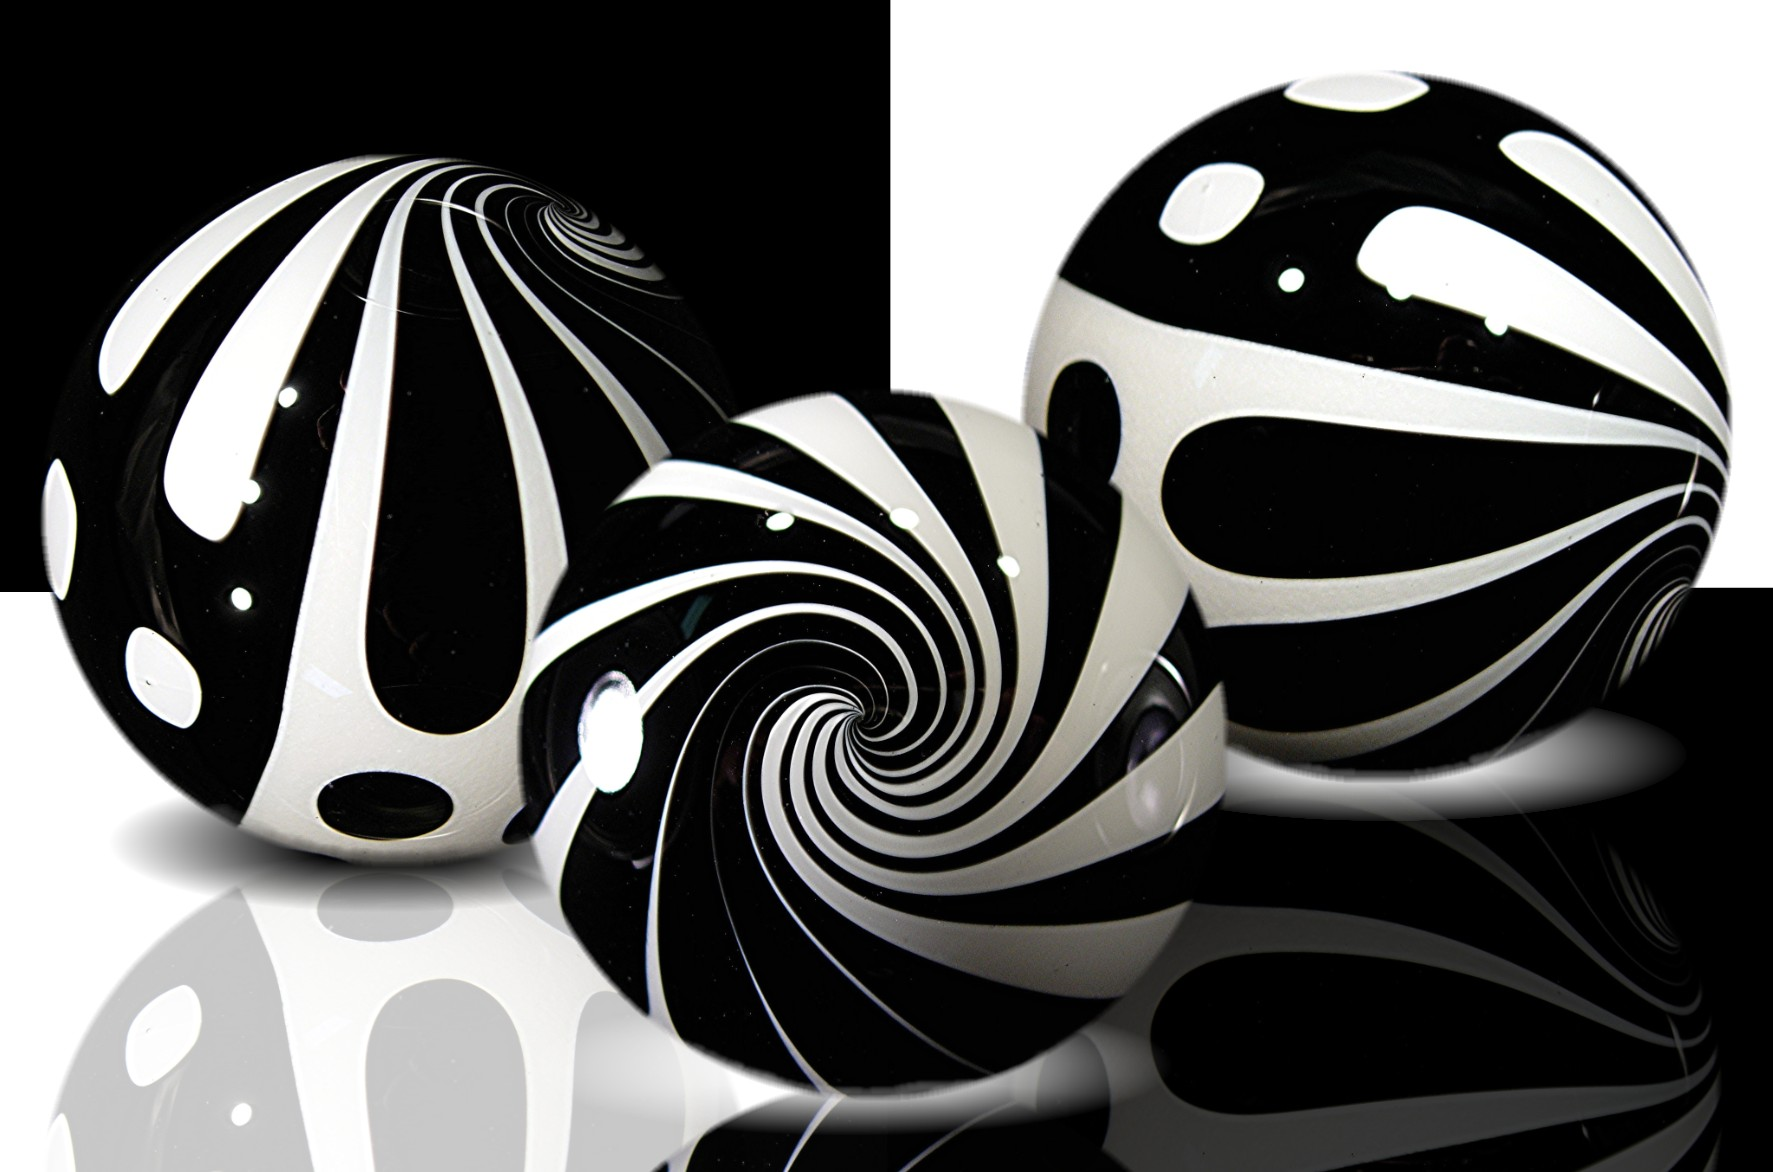 Kris Parke Black & White Graphics. exhibit at MODERN MARBLES!